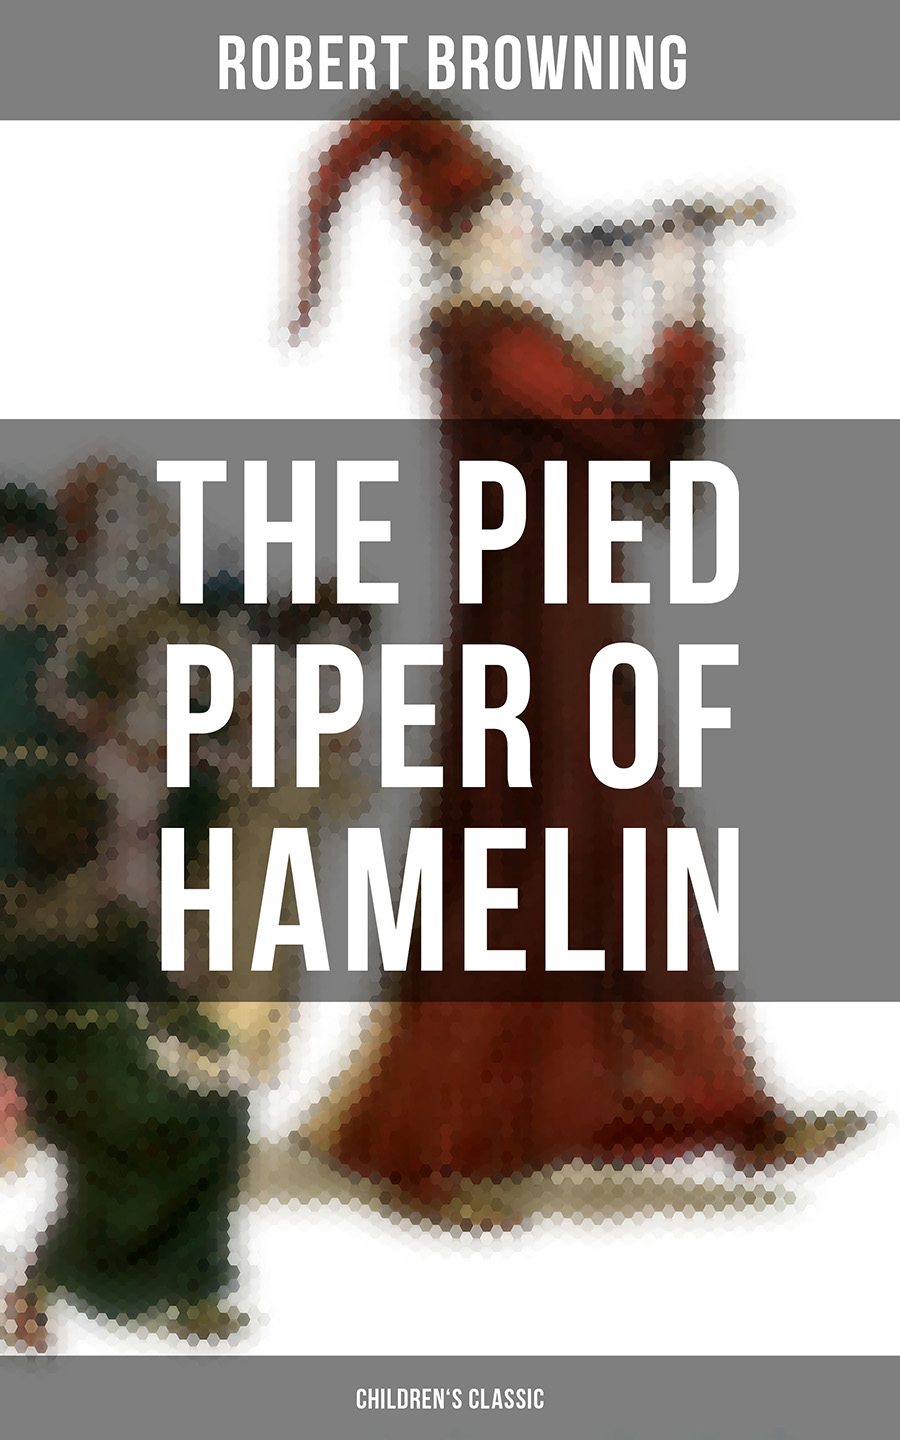 Robert Browning The Pied Piper of Hamelin (Children's Classic)